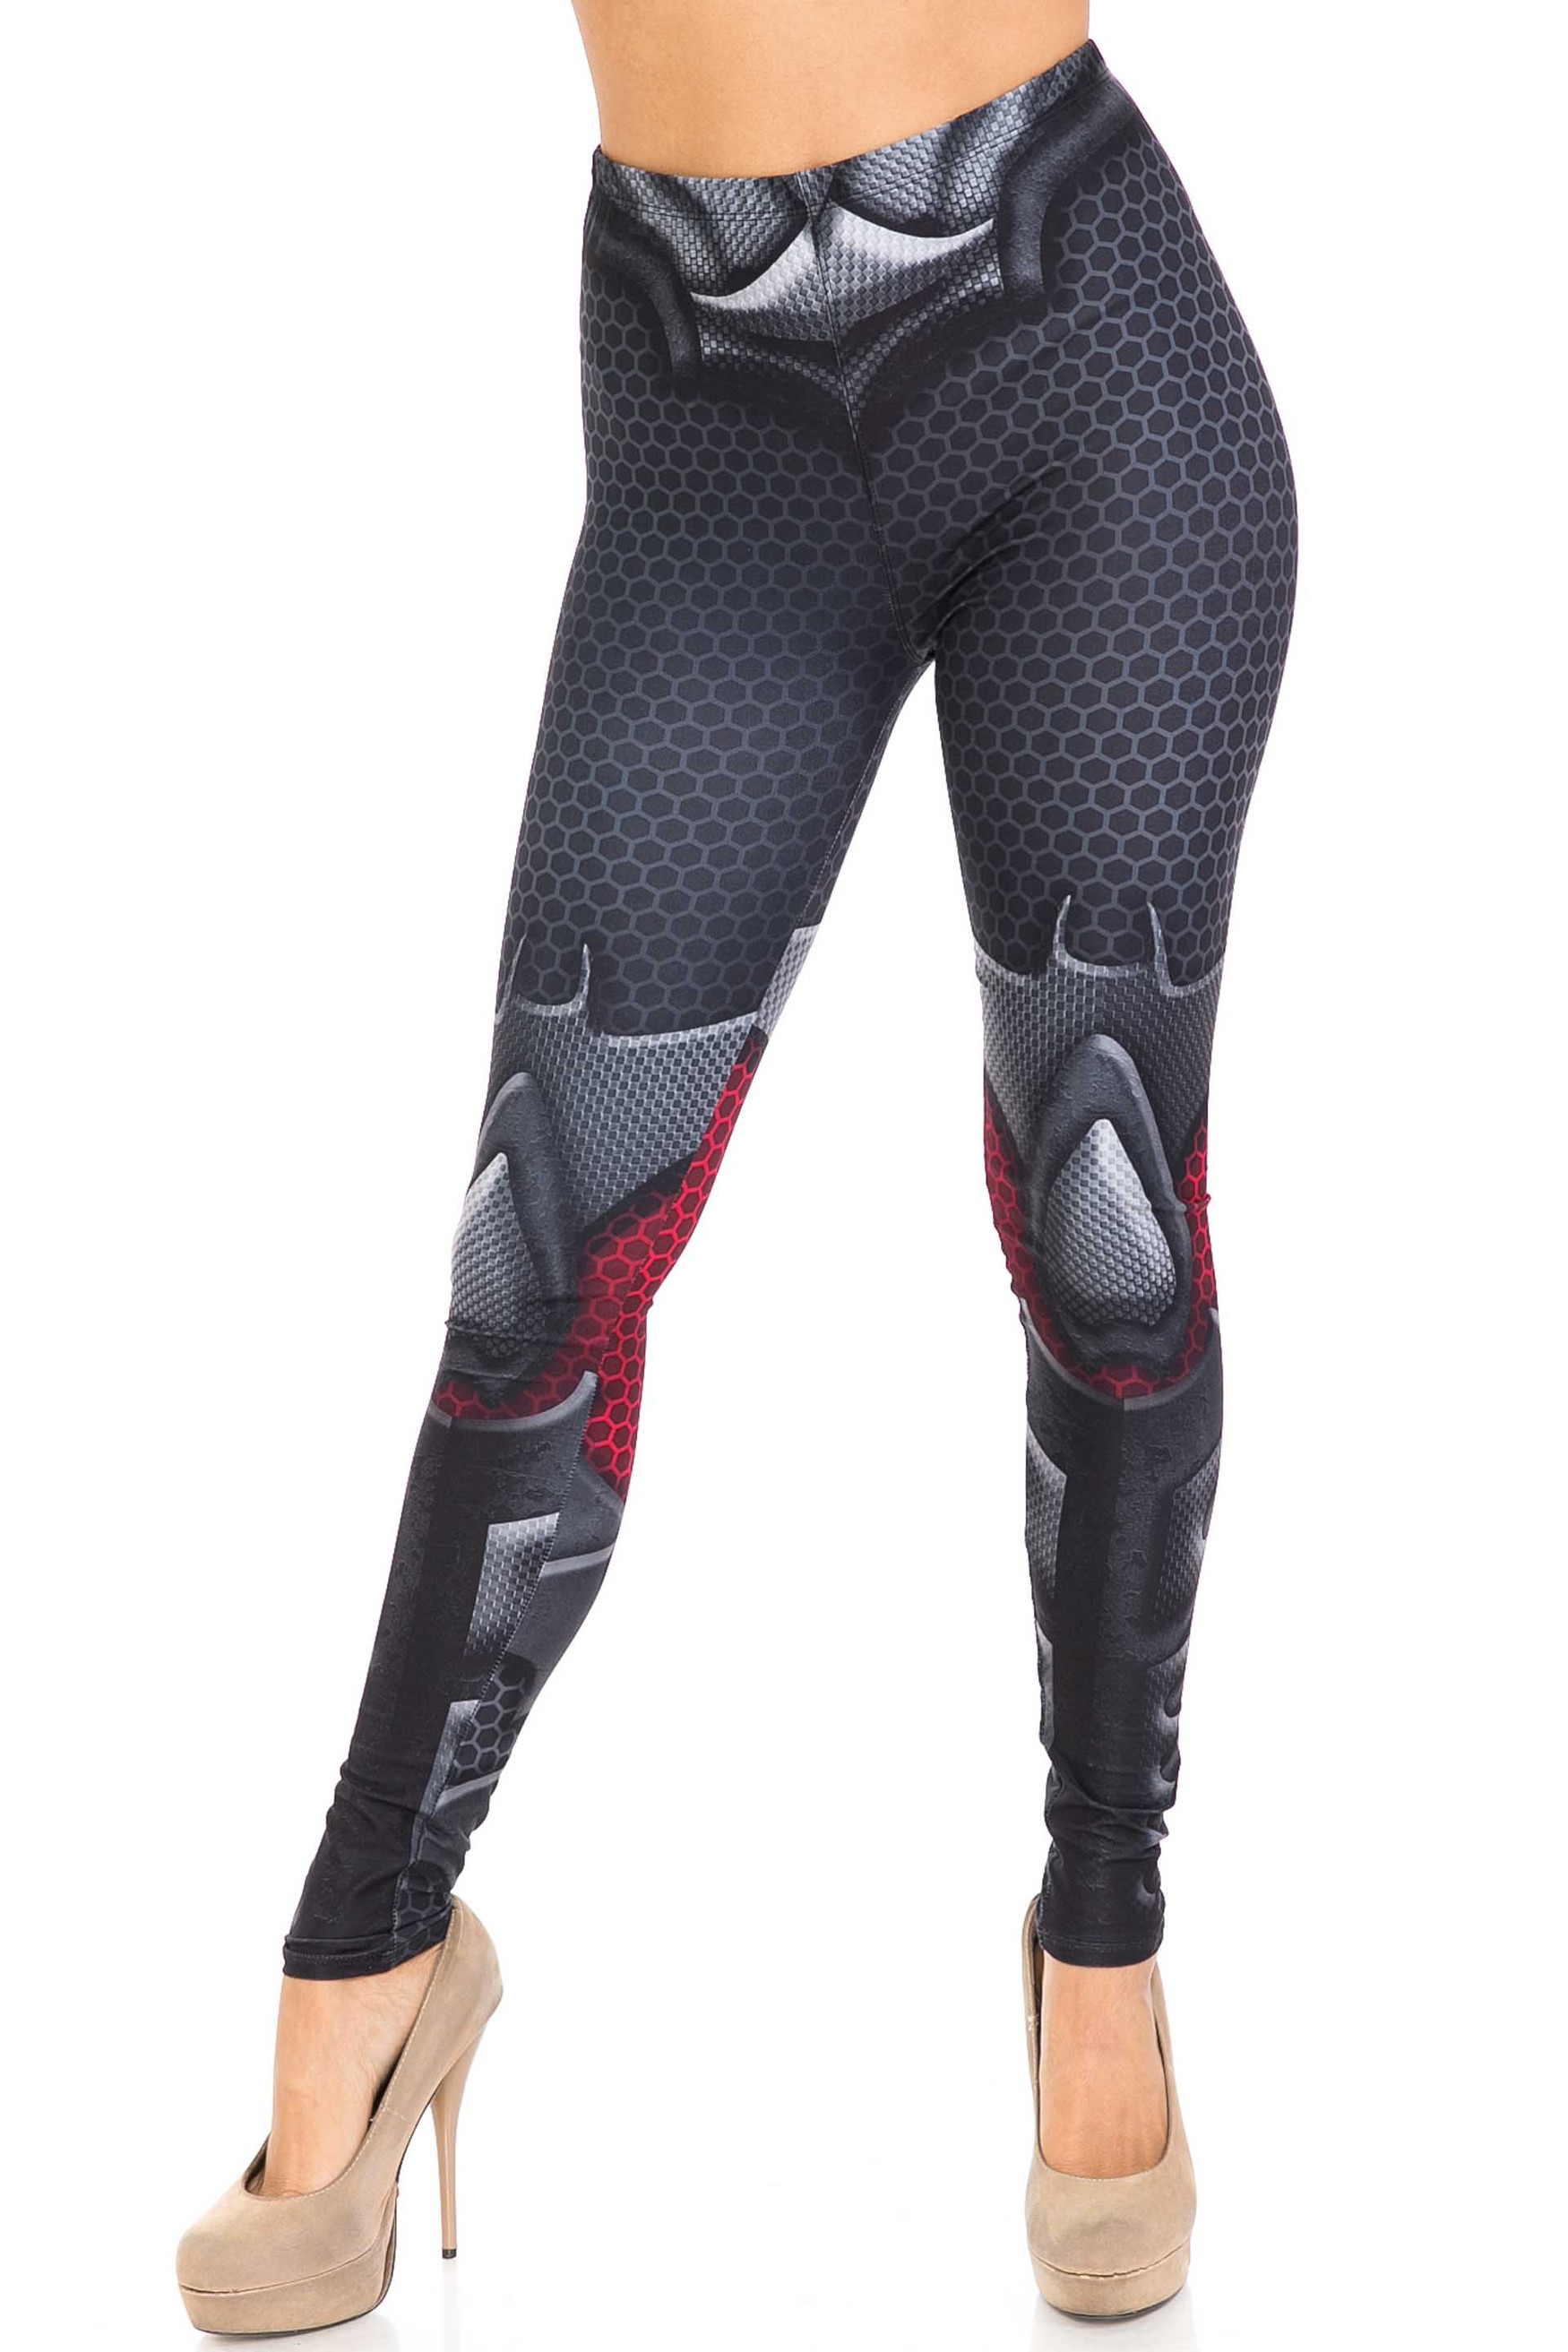 Creamy Soft Pretty Avenger Plus Size Leggings - USA Fashion™